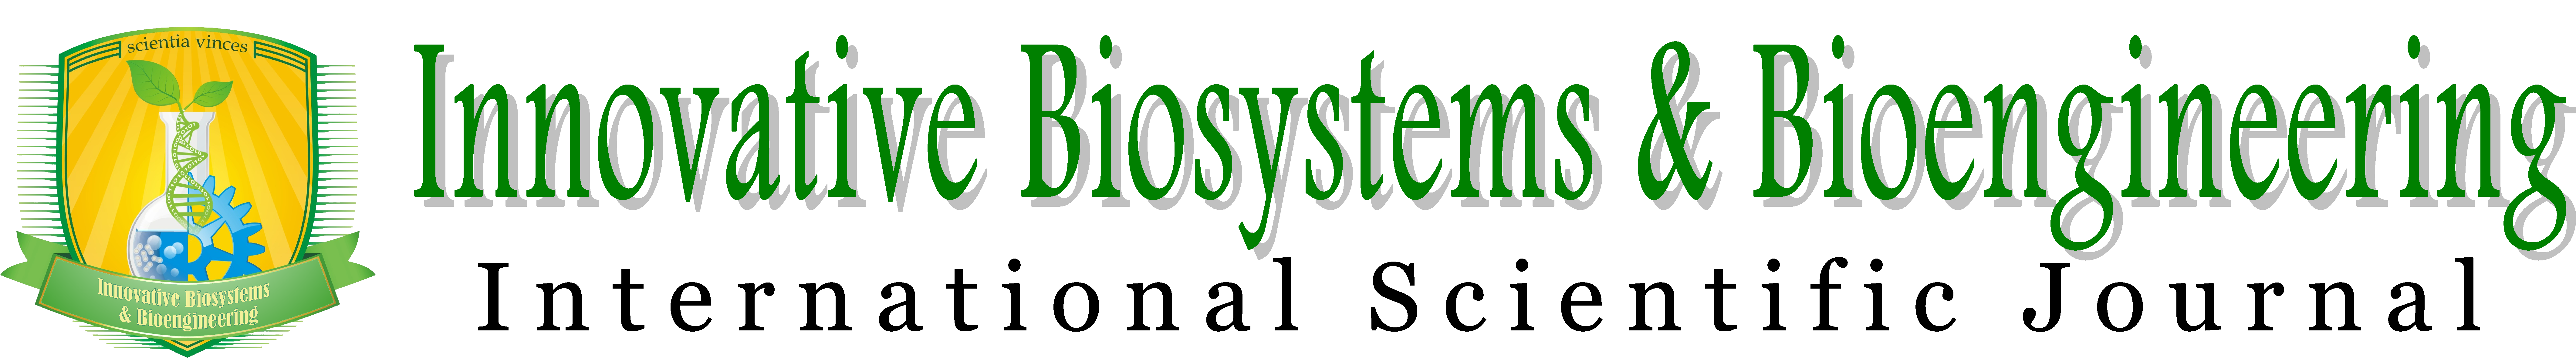 Innovative Biosystems & Bioengineering, International Scientific Journal